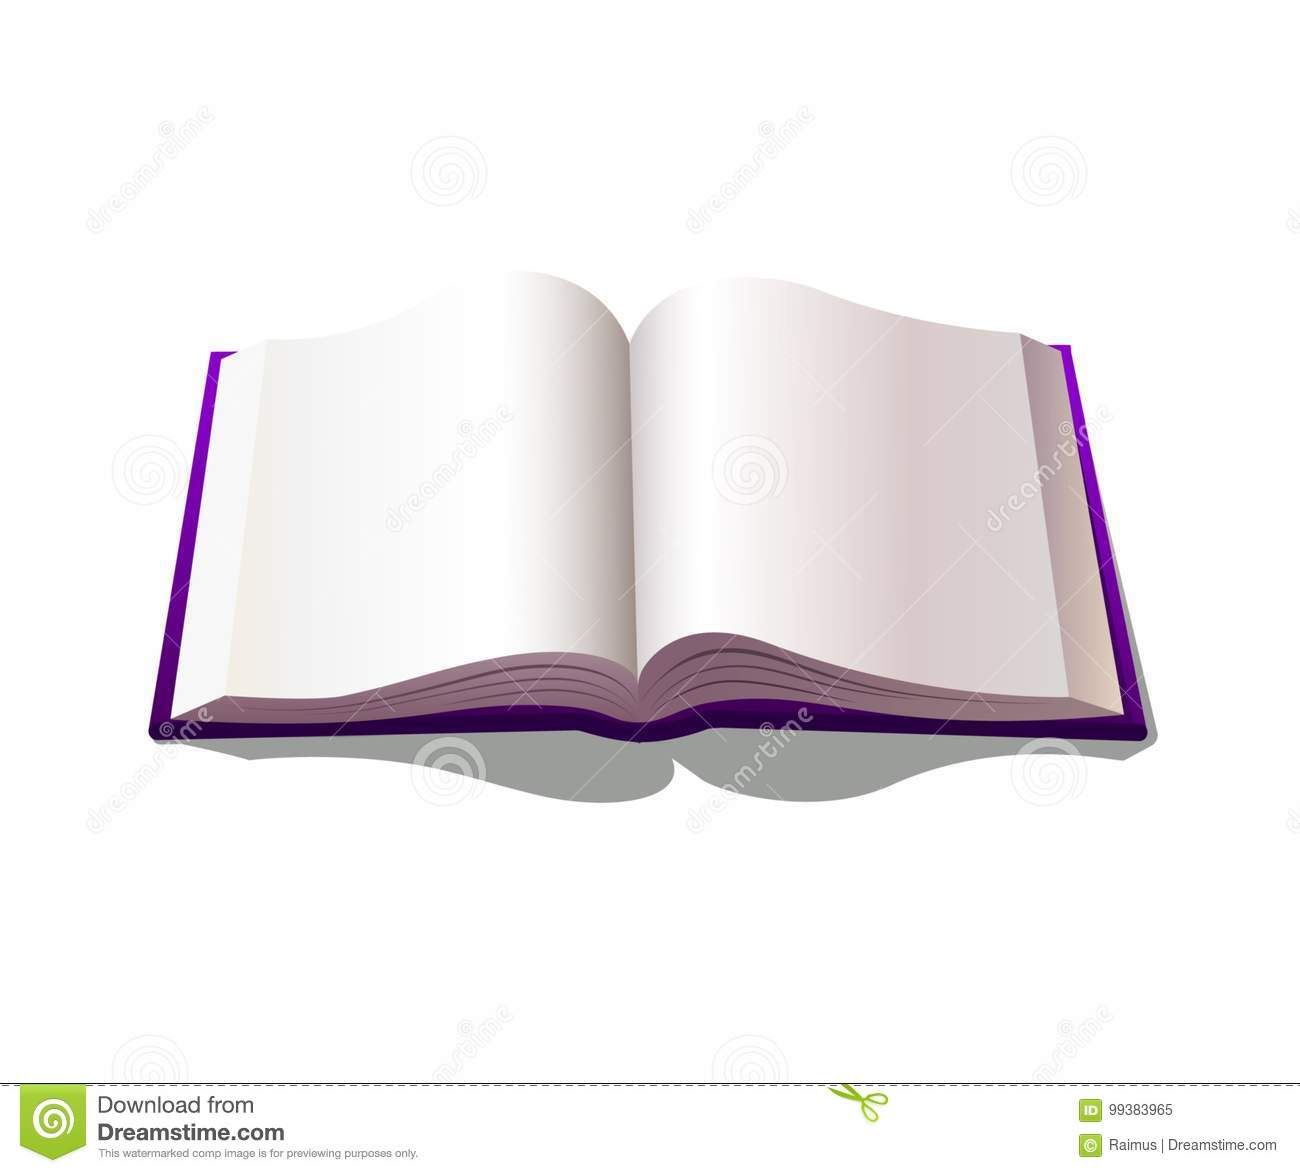 Illustration of blank opened book with purple cover.